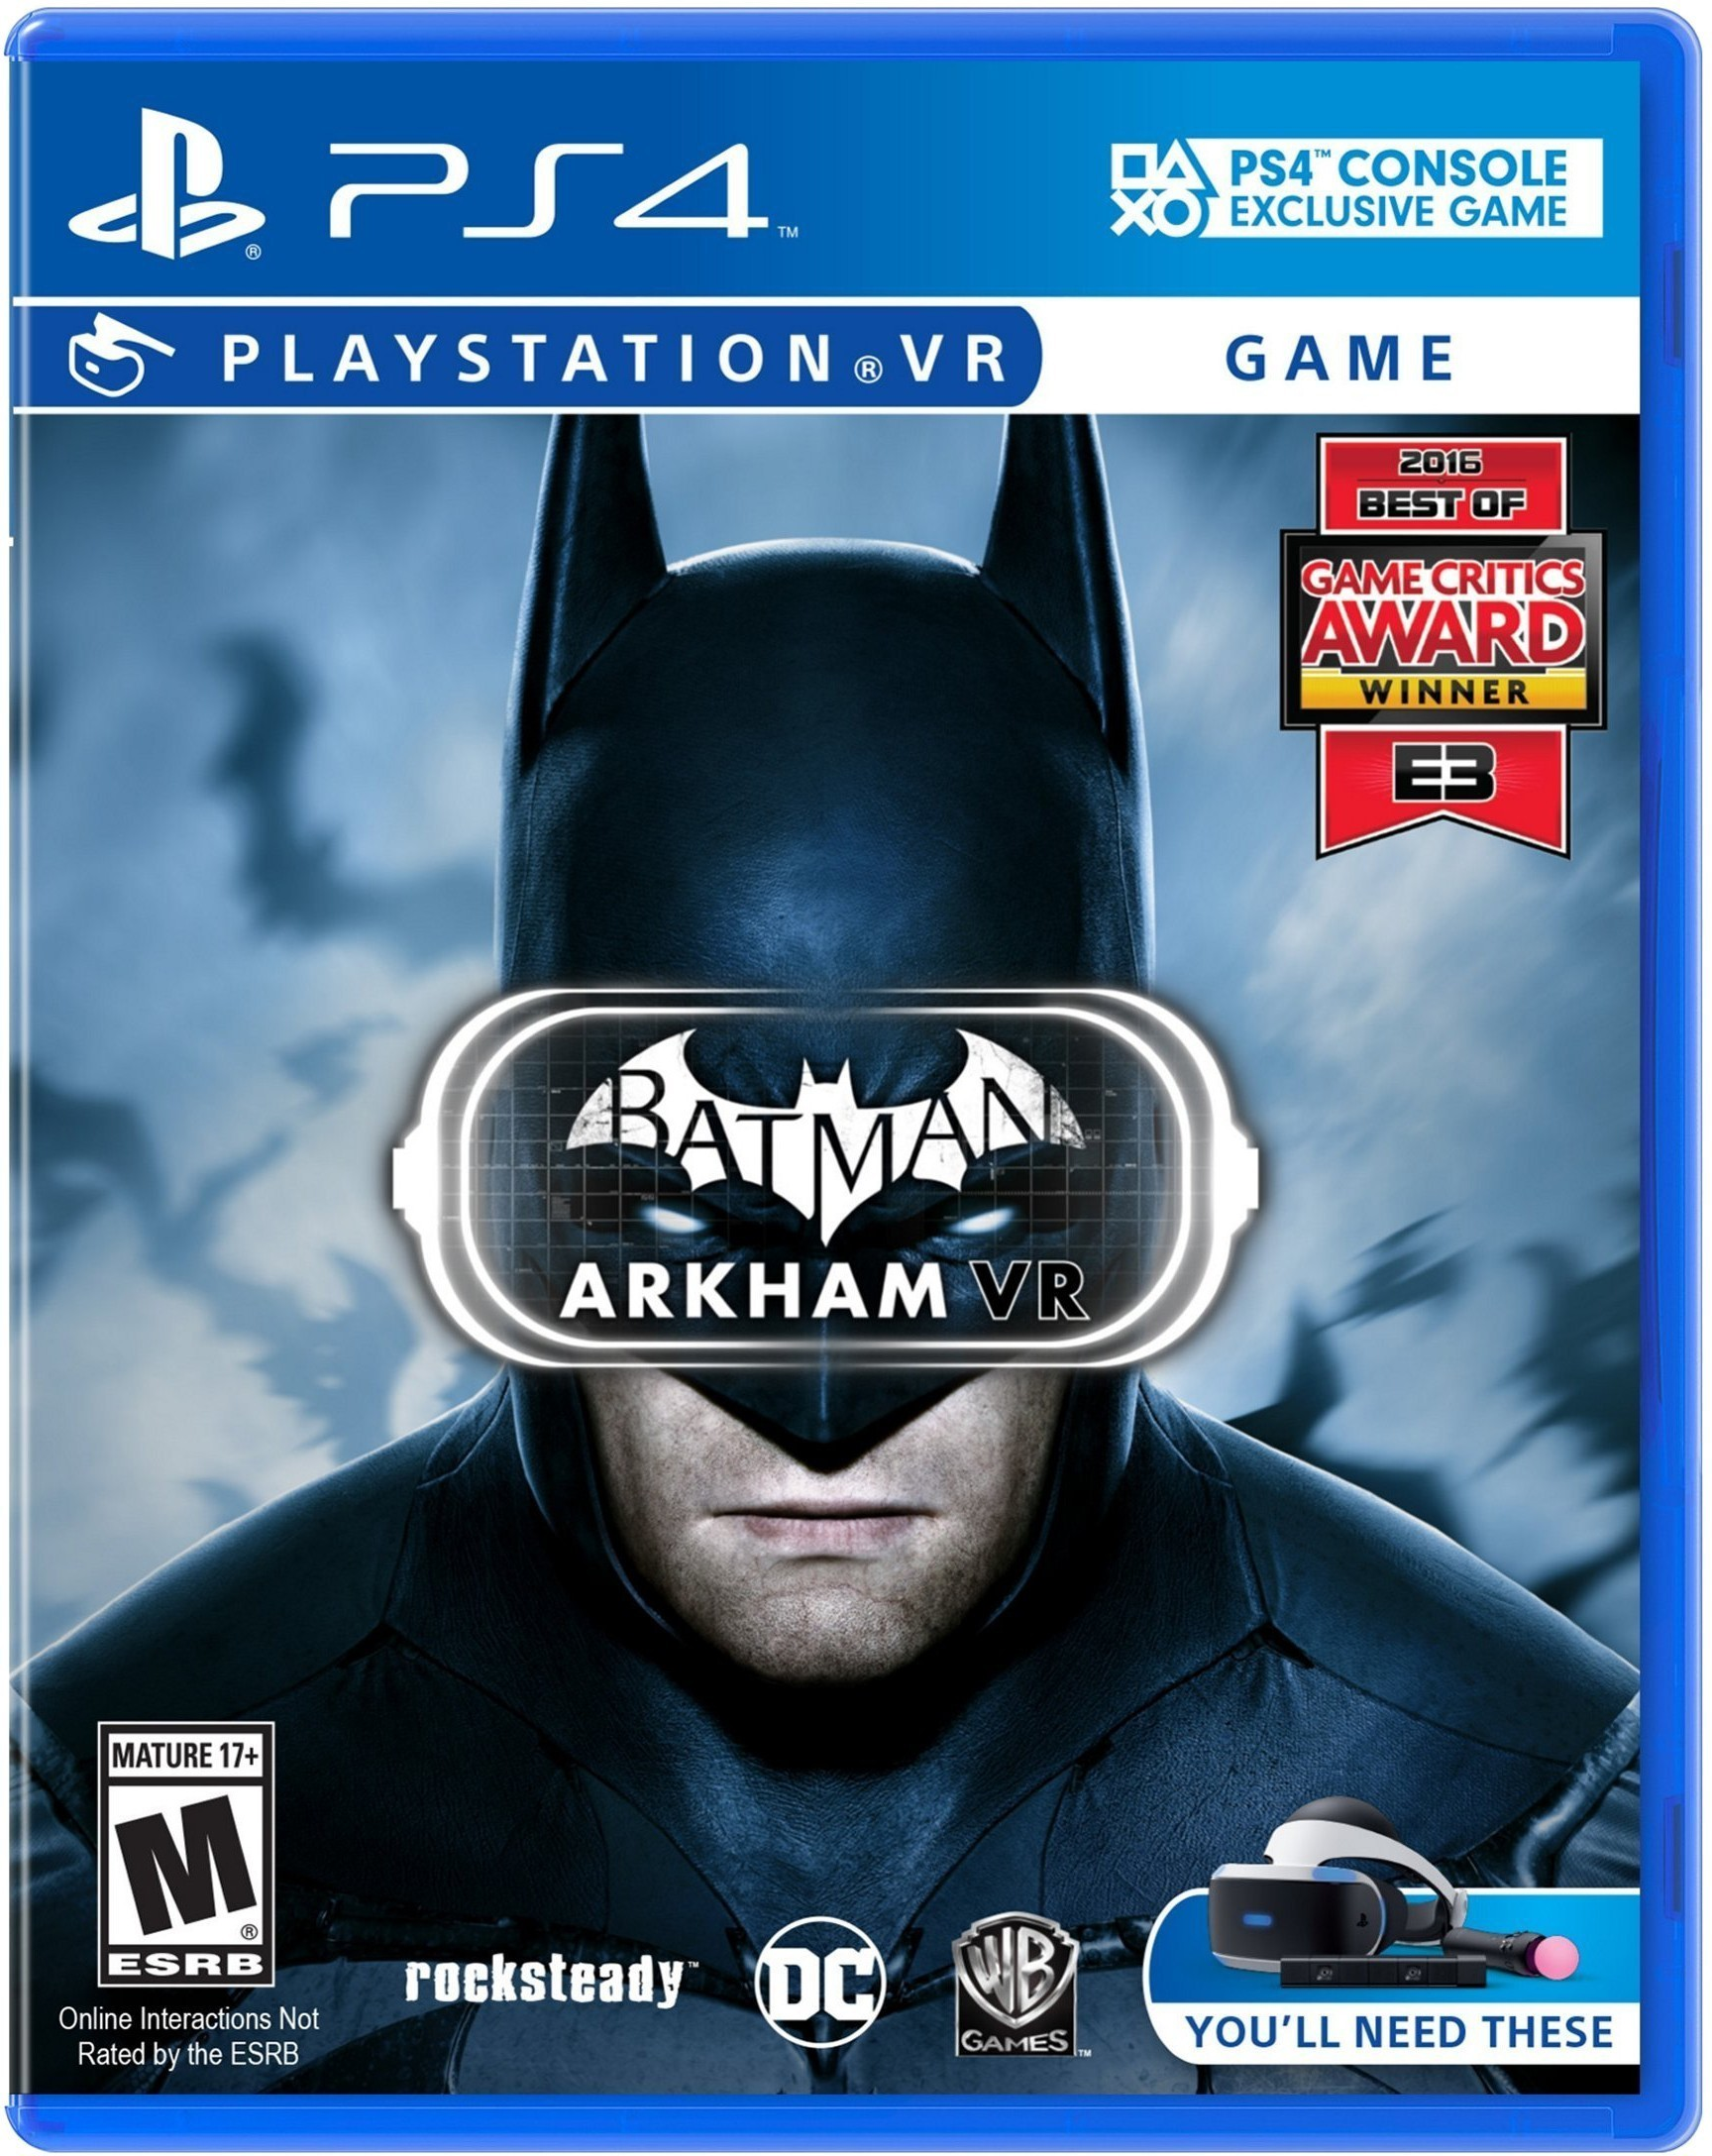 batman_arkham_vr_ps4_cover.jpg